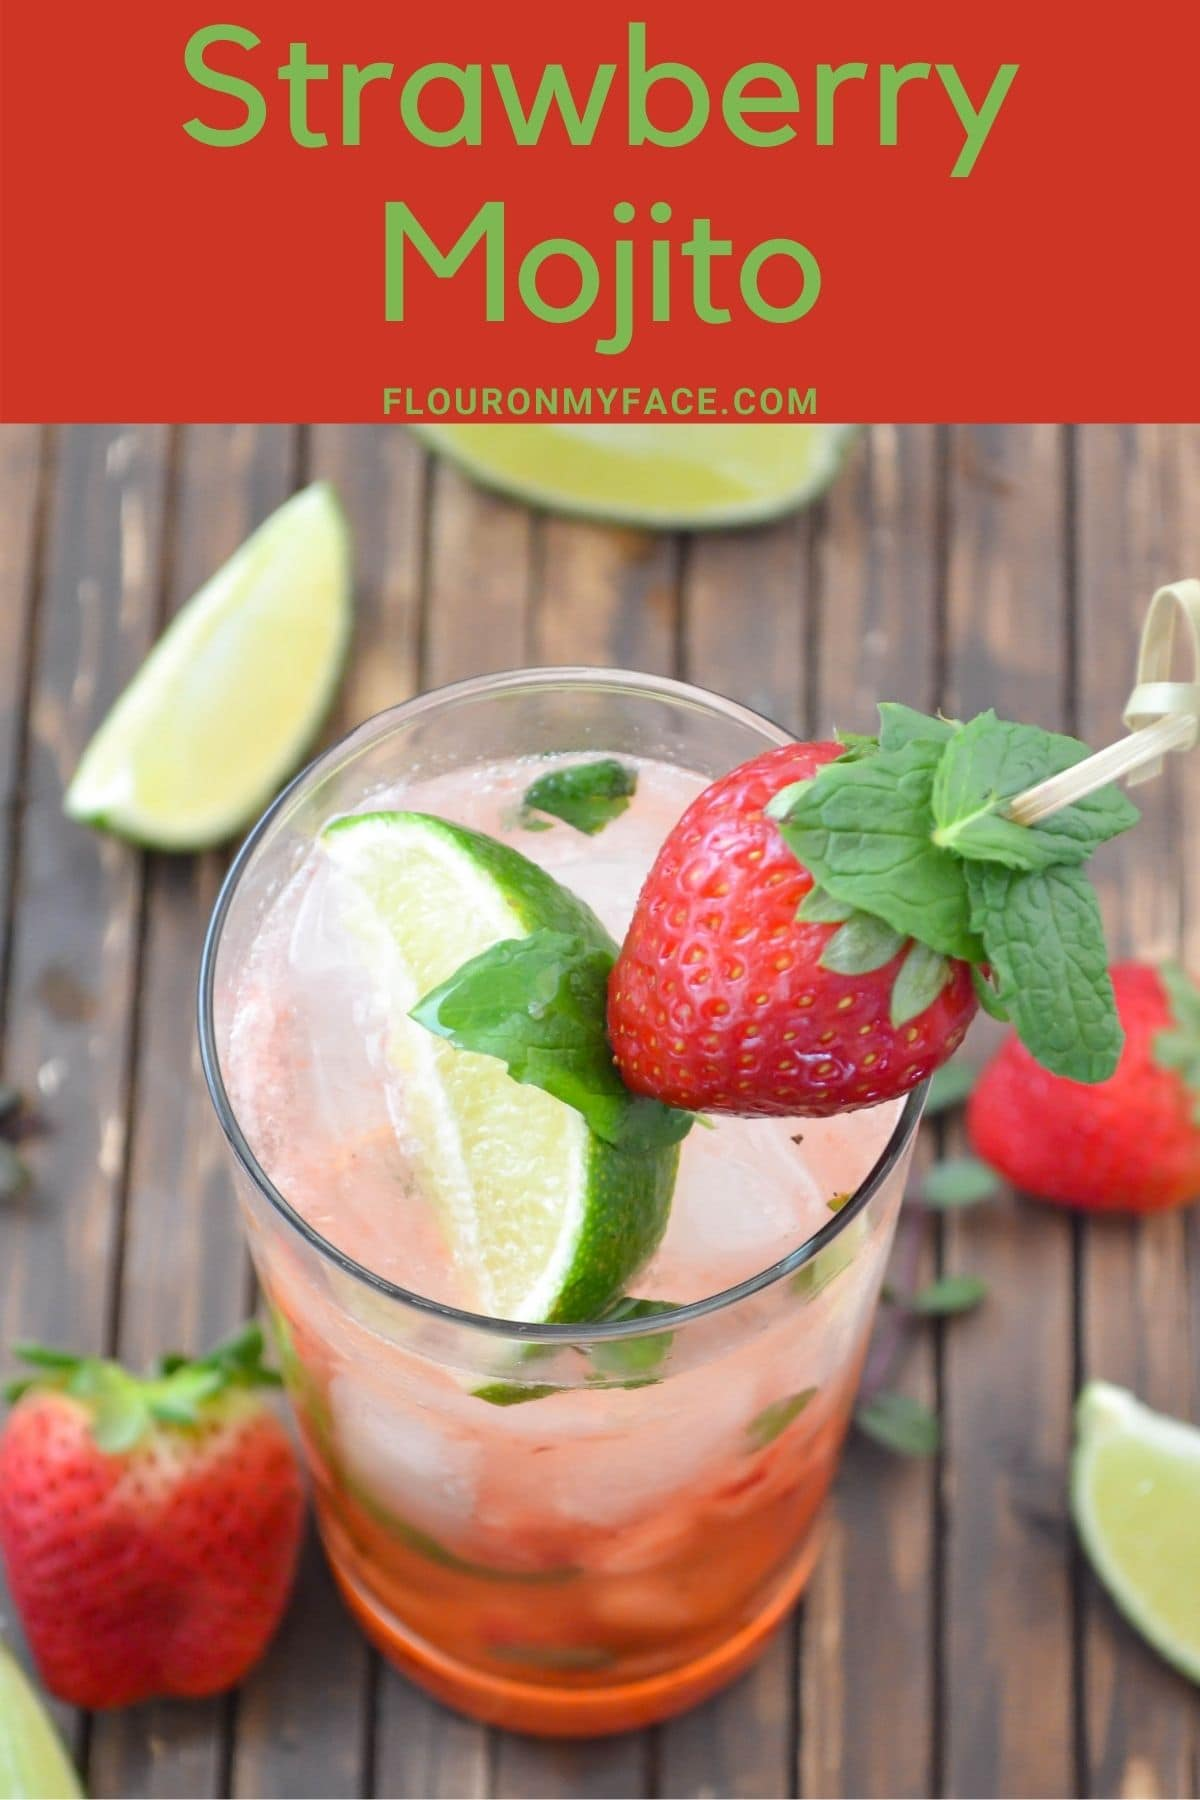 Tall glass filled with Strawberry Mojito garnished with a strawberry, lime wedge and mint.